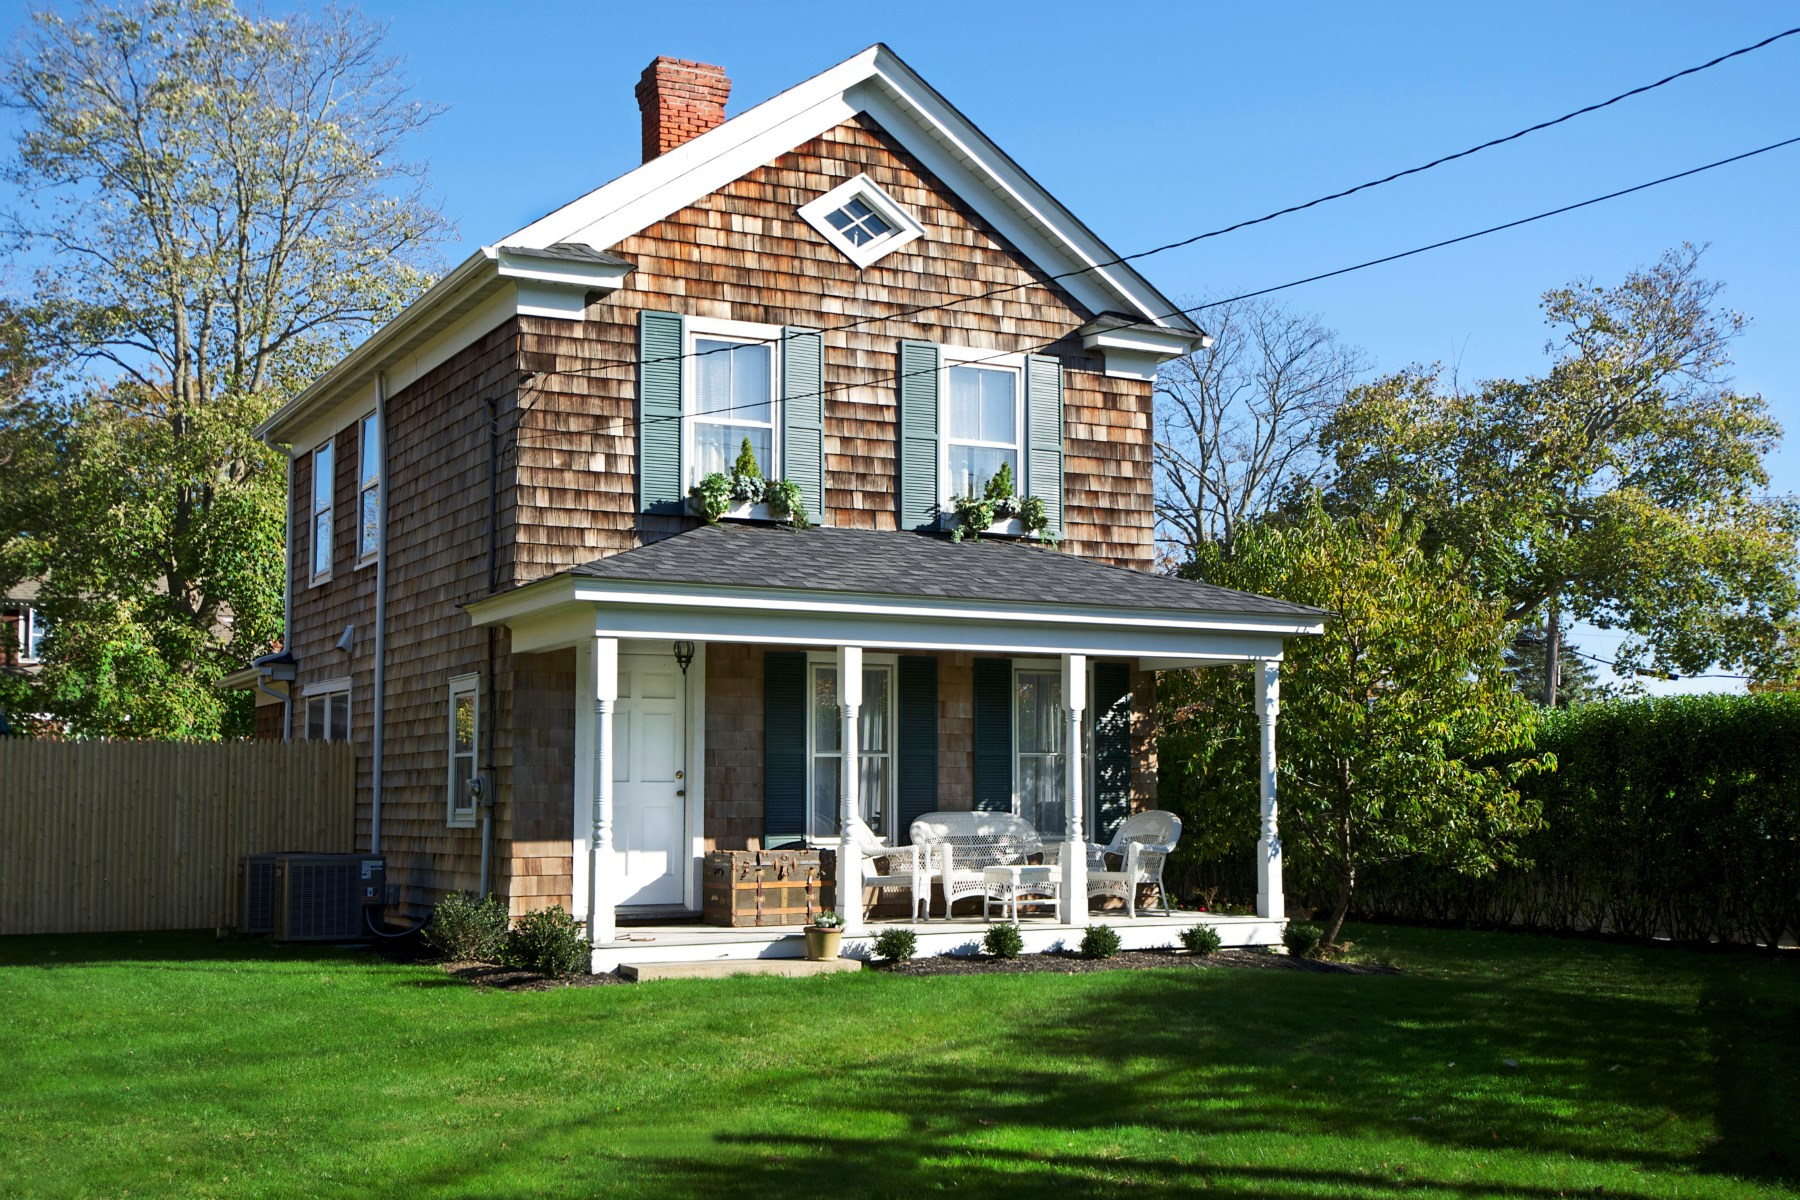 Single Family Home for Rent at Perfect Village Traditional Southampton 146 North Sea Road Southampton, New York 11968 United States